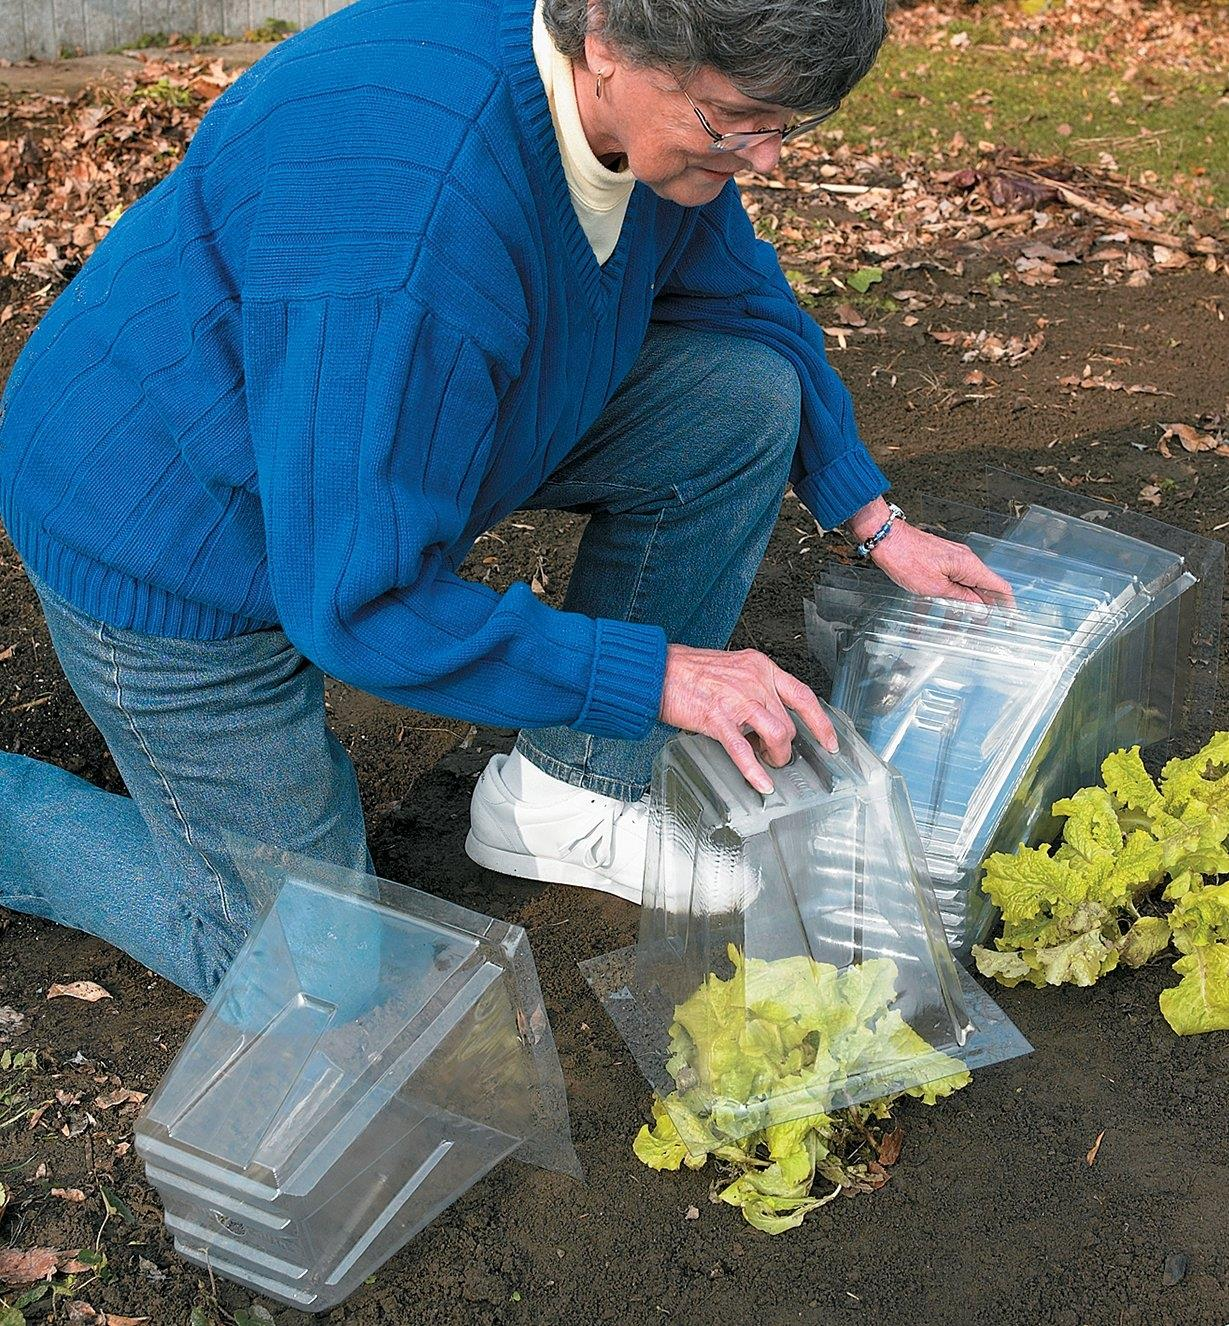 A woman covers lettuce in a garden with cloches